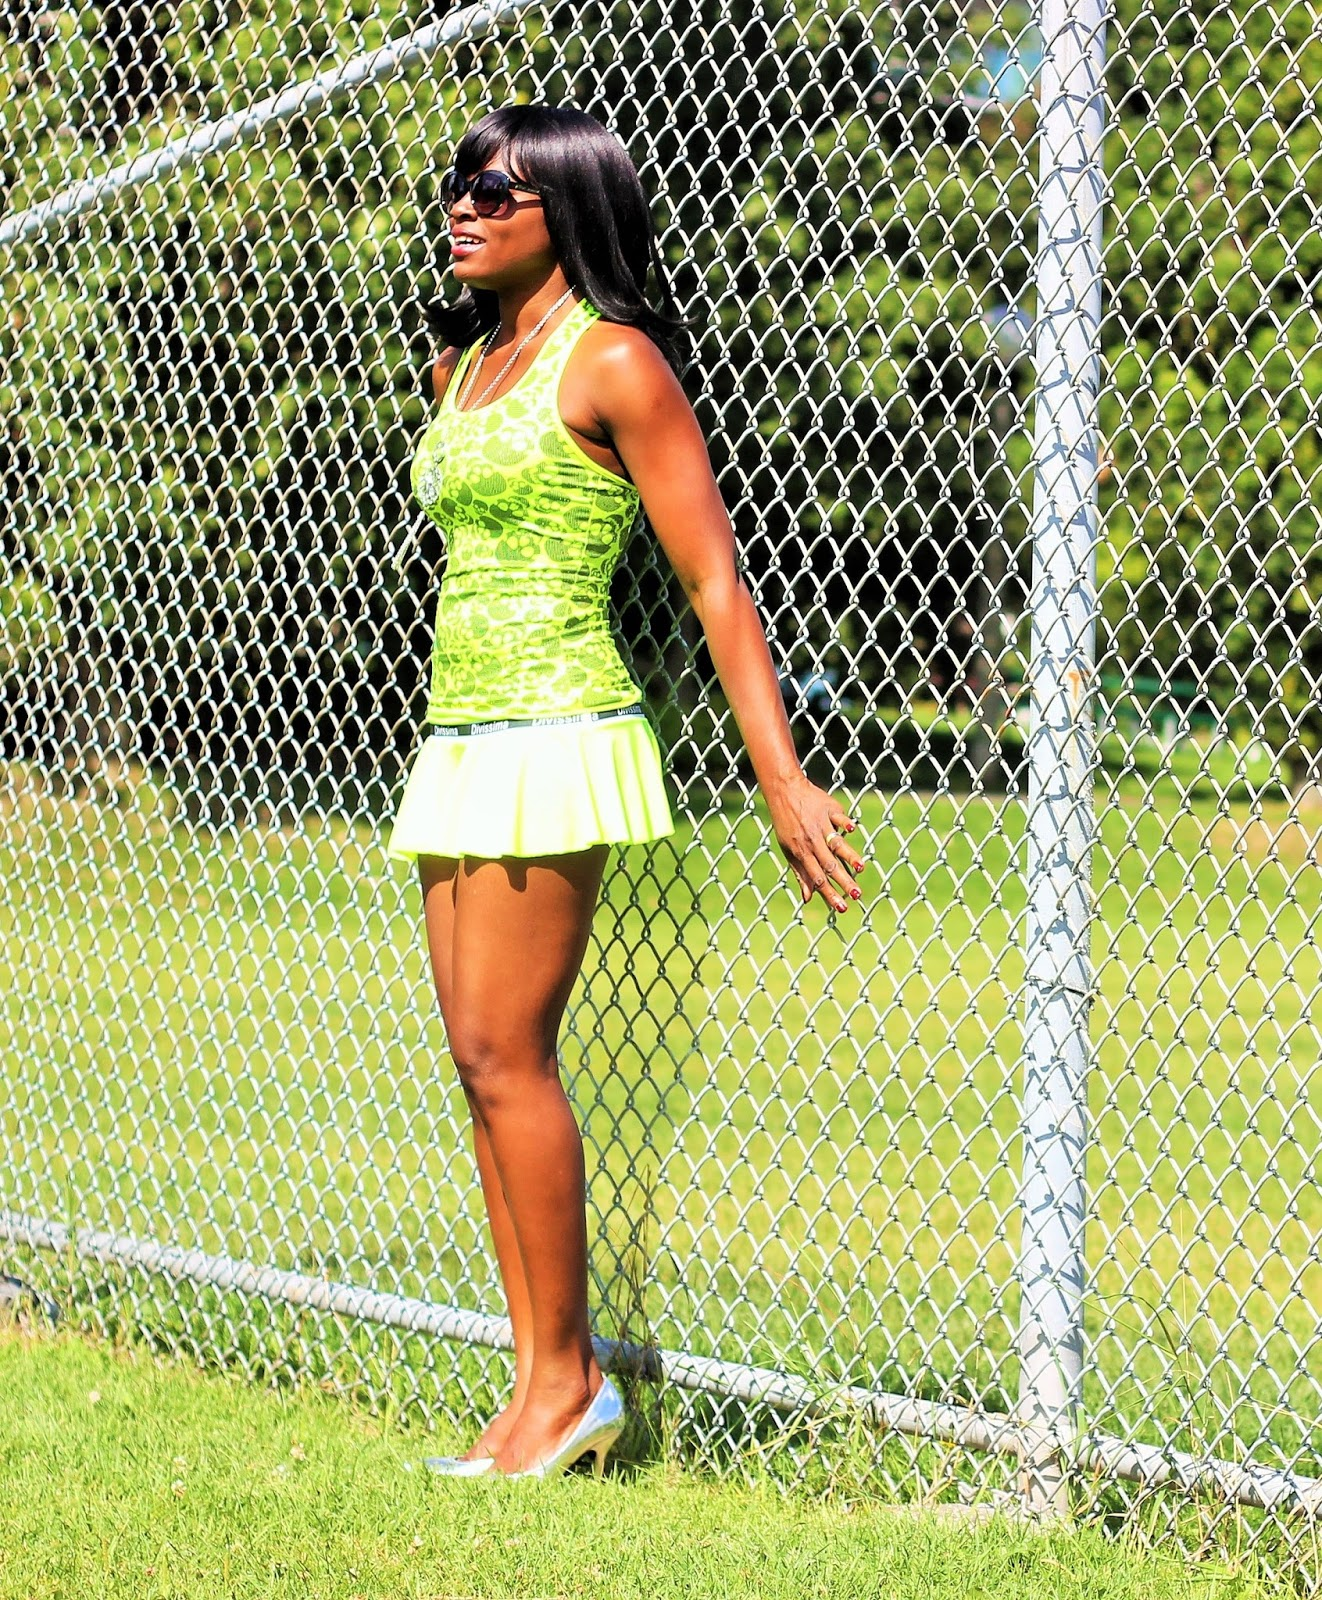 Perfect Women's Tennis Outfit By Divissima